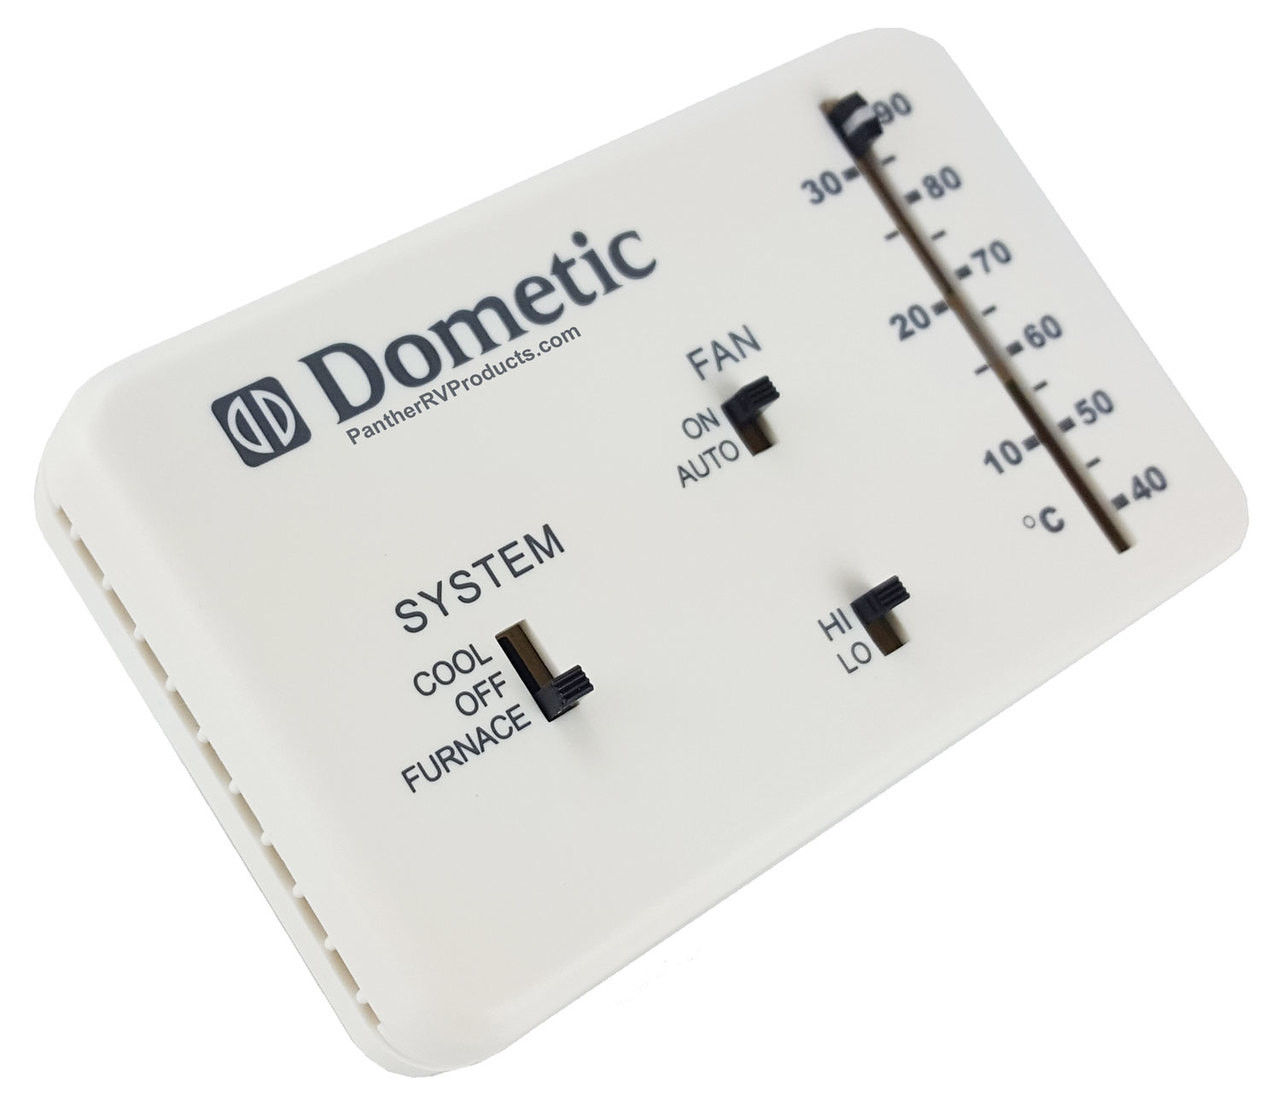 hight resolution of dometic 3106995 032 thermostat 6 wire analog control heat cool duo temp thermostat 7 wire diagram